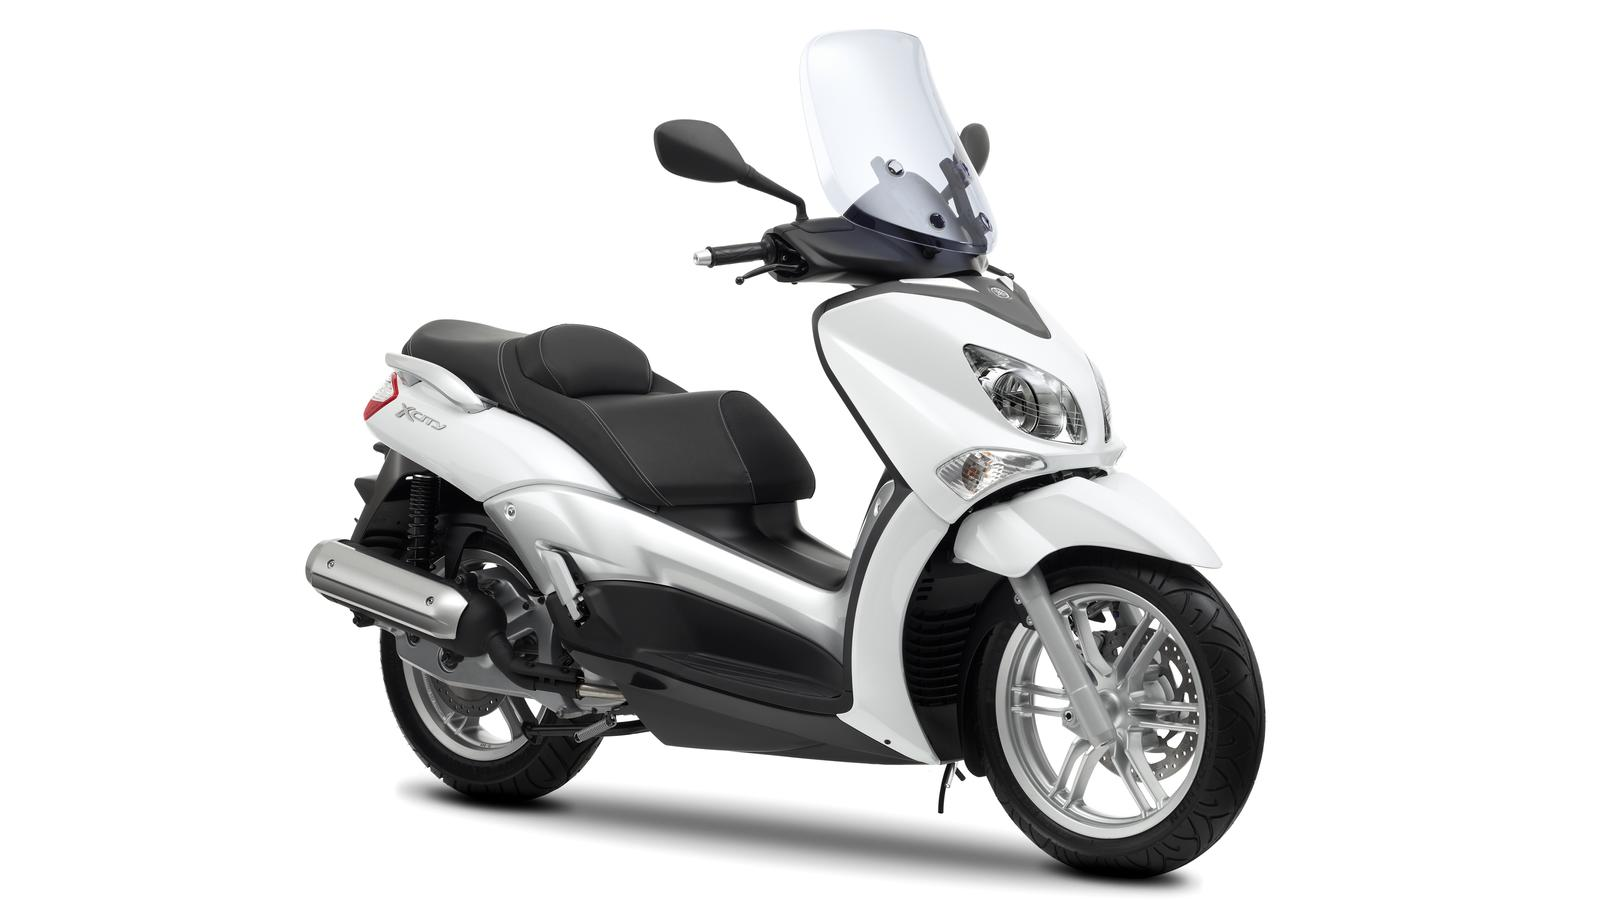 2012 yamaha x city 125 review top speed. Black Bedroom Furniture Sets. Home Design Ideas